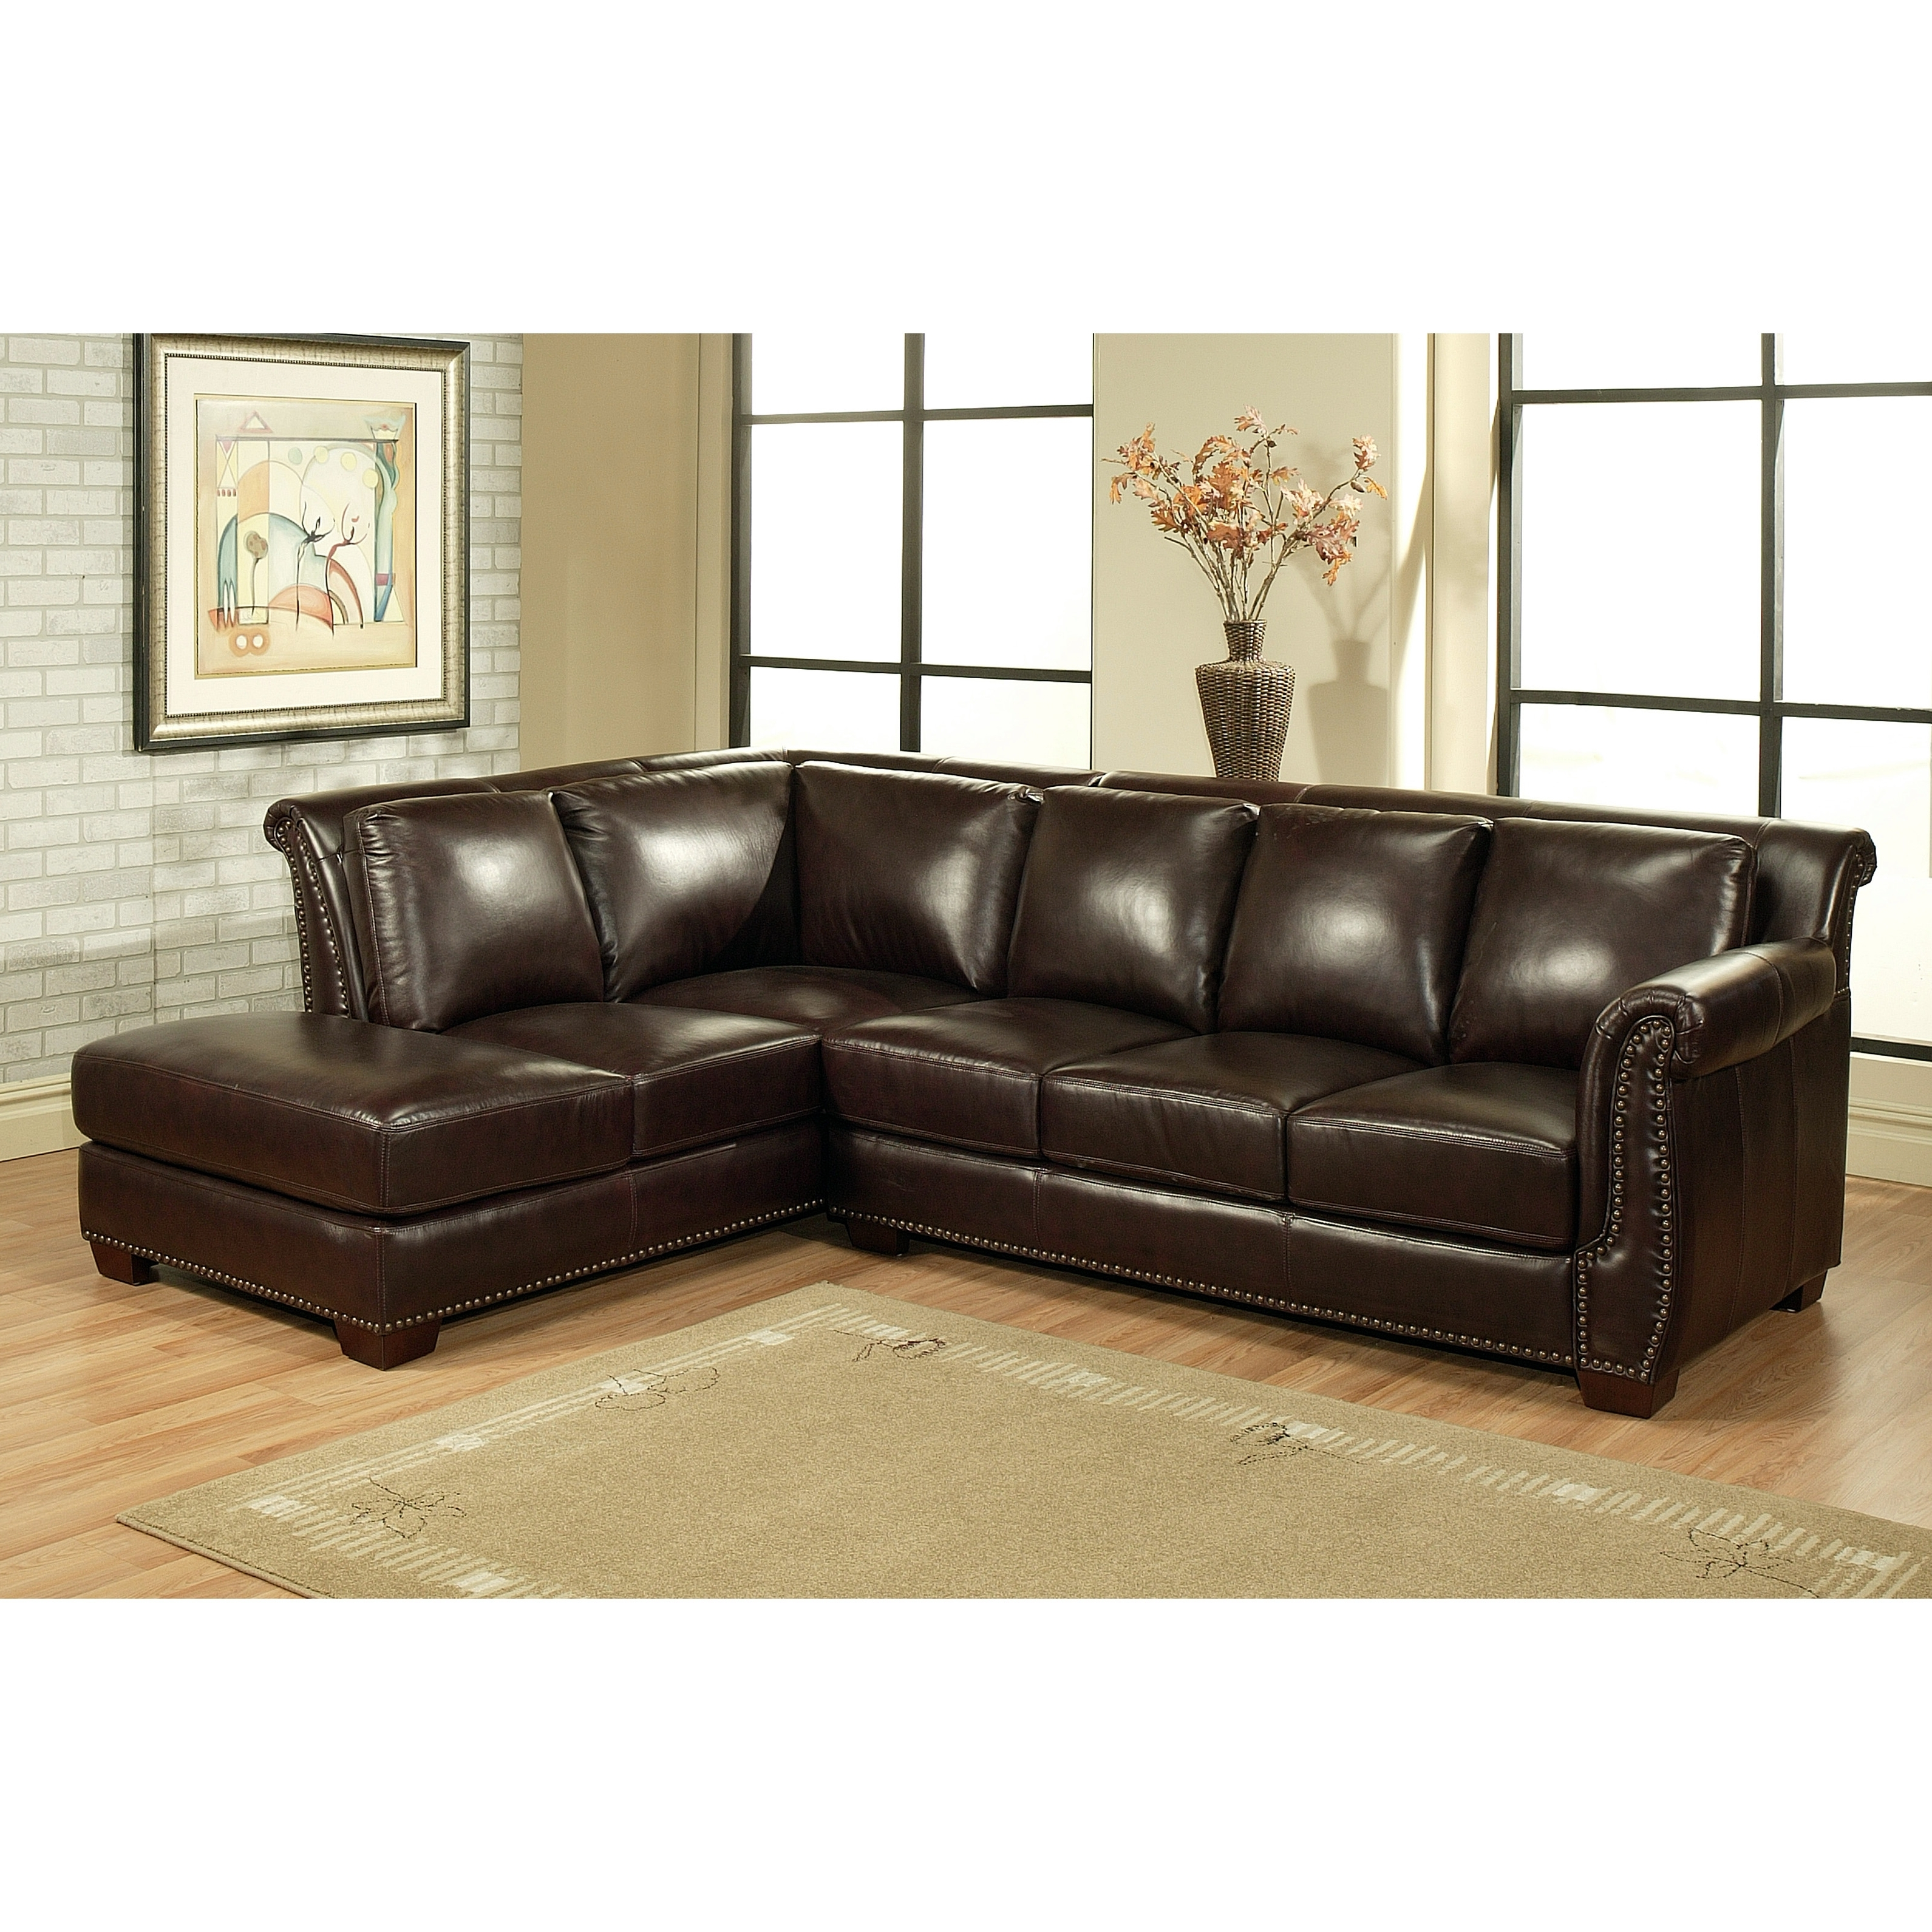 Sectional Sofa Design: Elegant Abbyson Sectional Sofa Abbyson Within Trendy Abbyson Sectional Sofas (View 6 of 20)